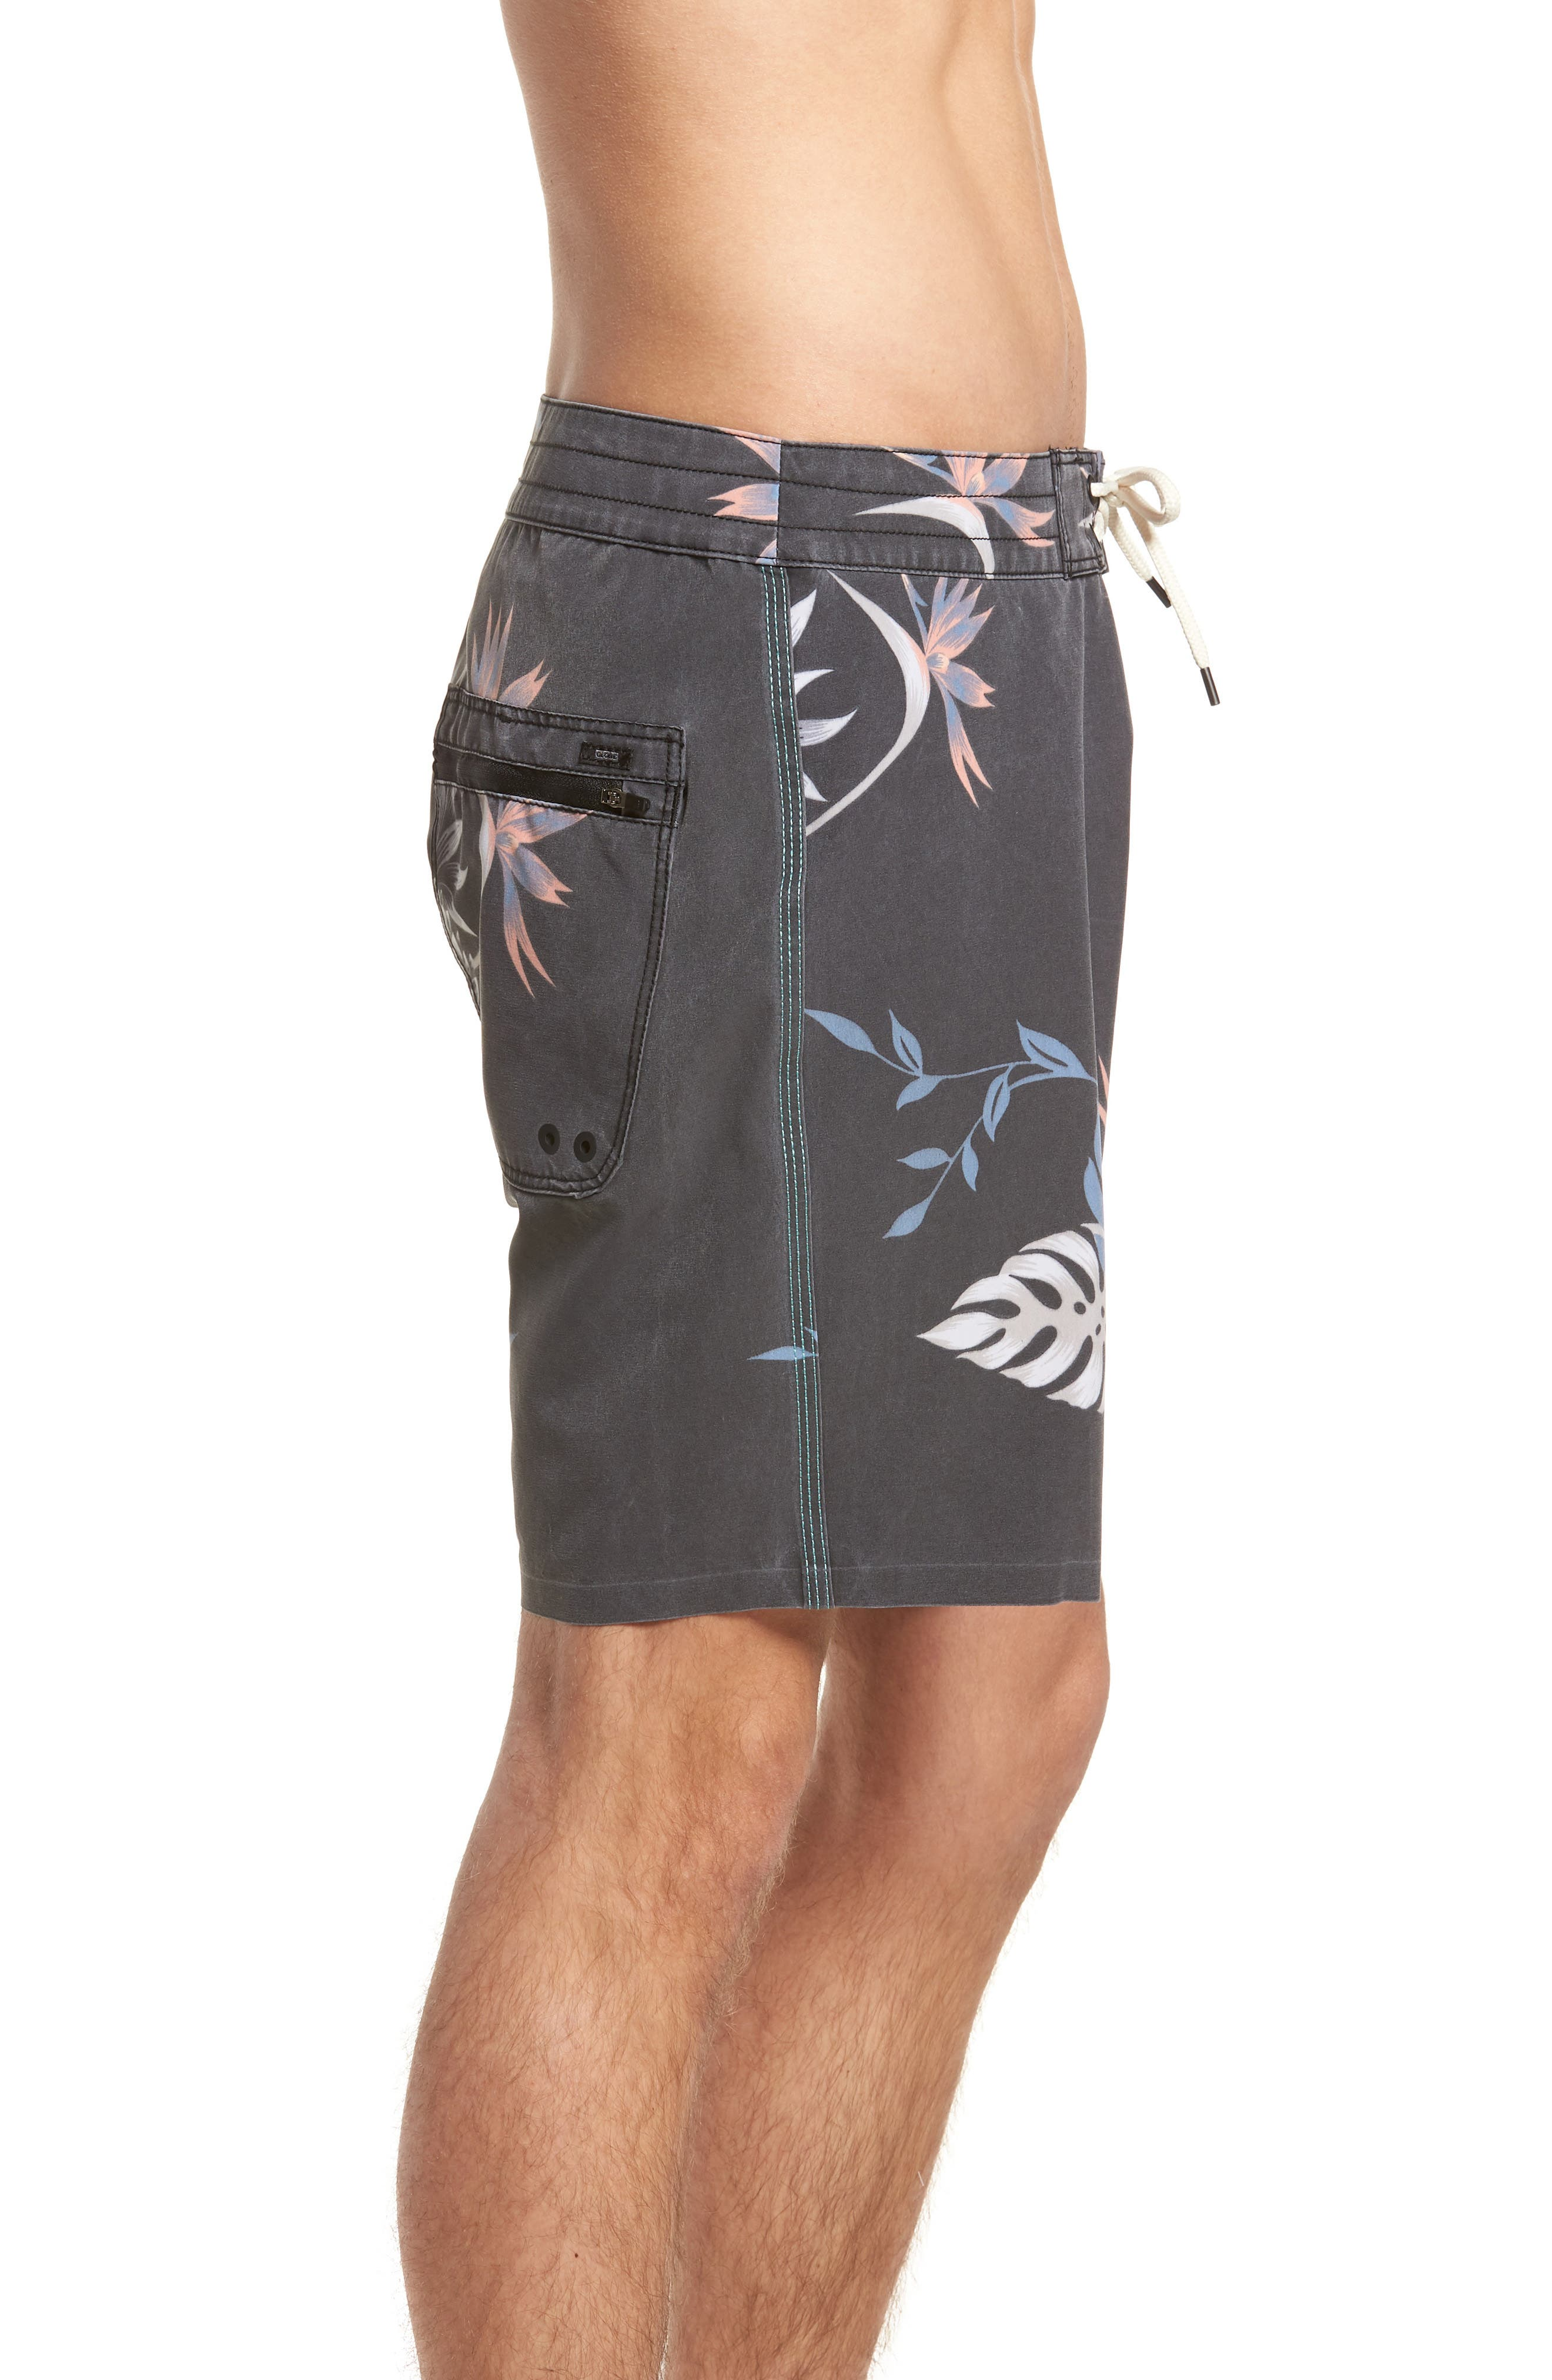 Shangri-La 3.0 Board Shorts,                             Alternate thumbnail 3, color,                             Granite